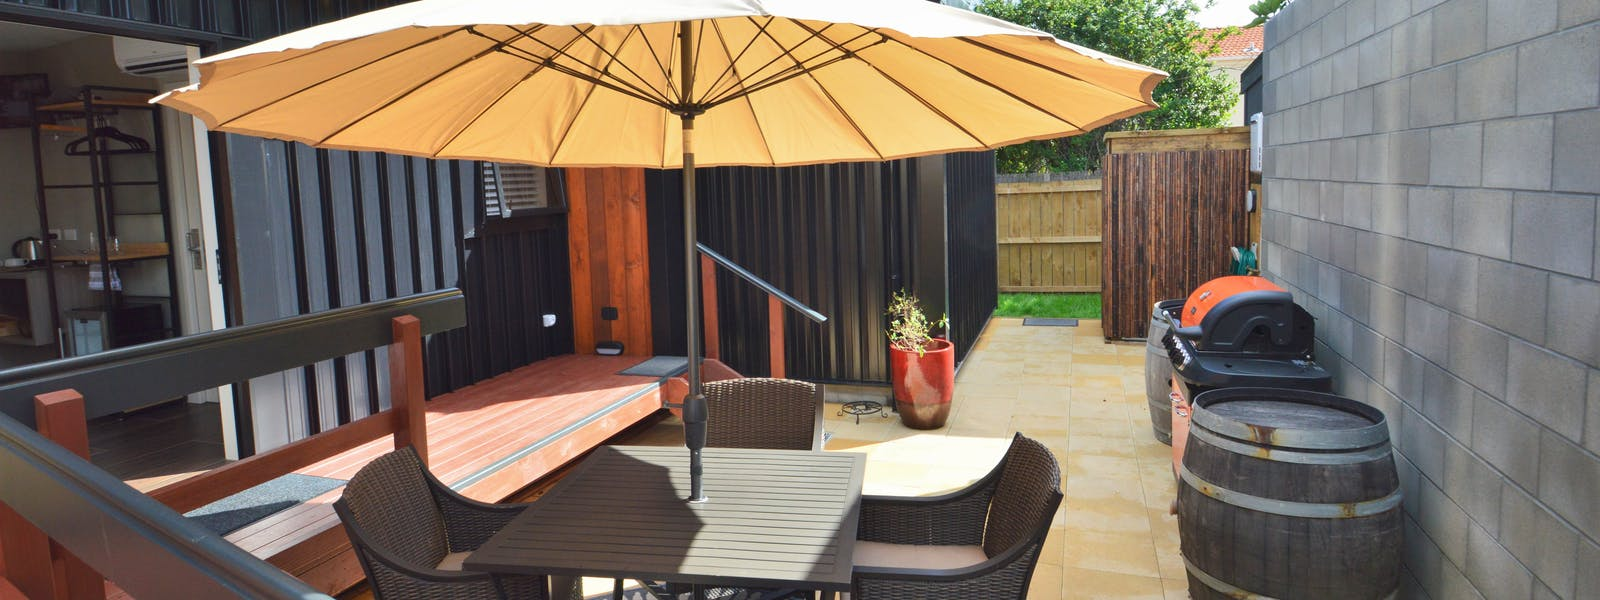 Courtyard with outdoor setting & BBQ